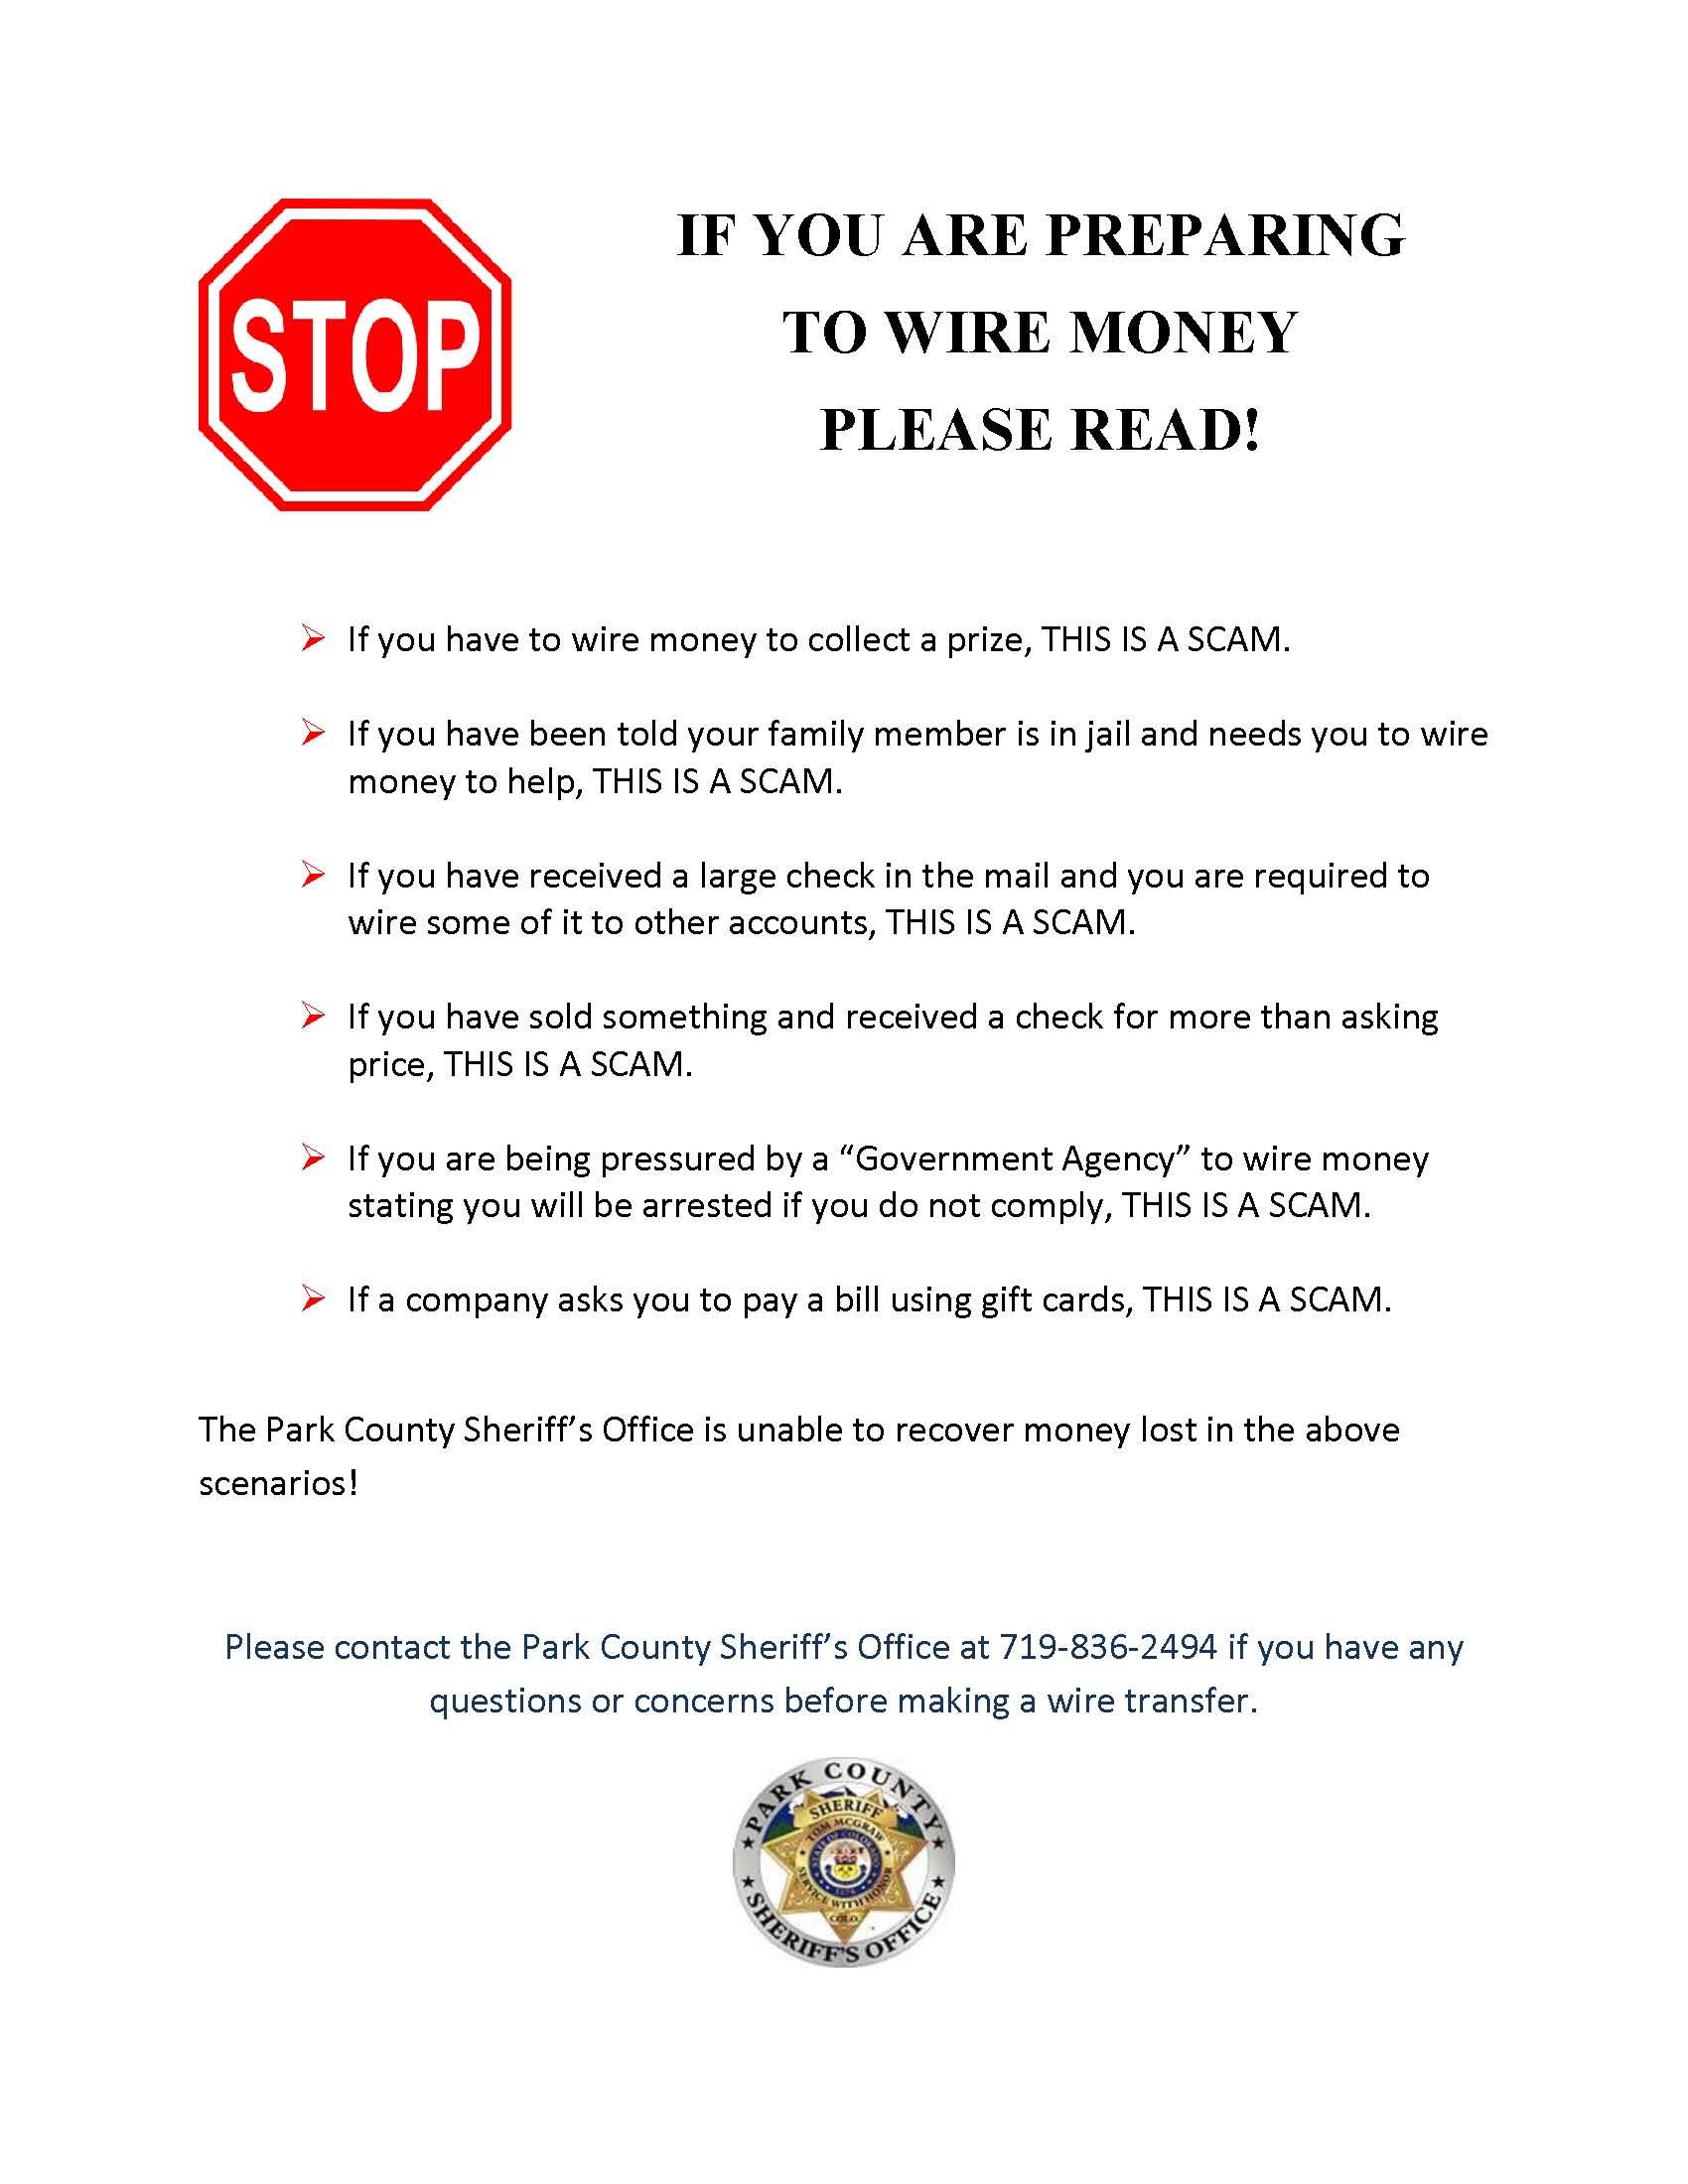 Park County Sheriff Warning - This is a SCAM